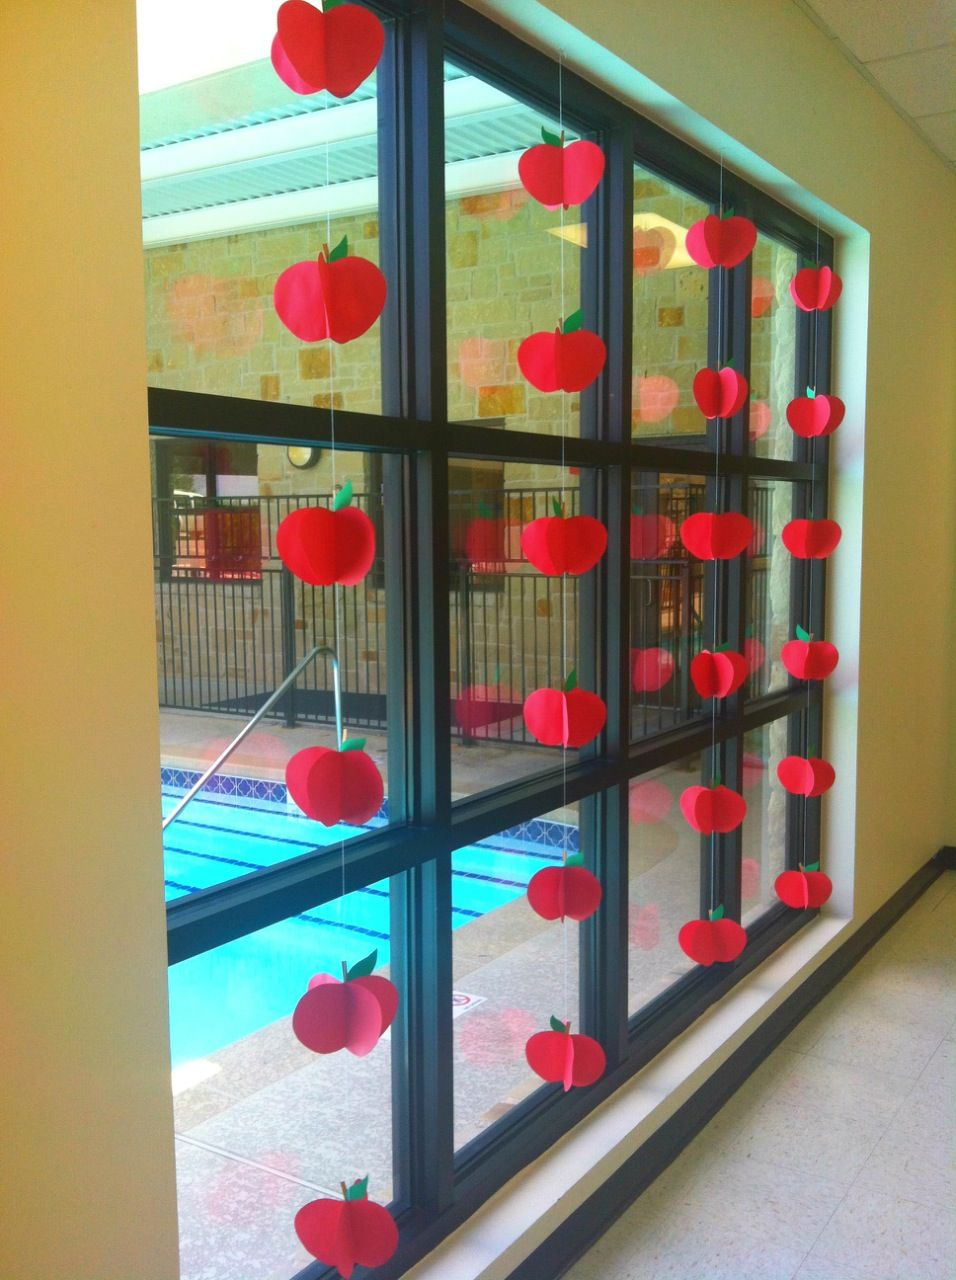 Classroom Ideas Display : Back to school apple window display decor